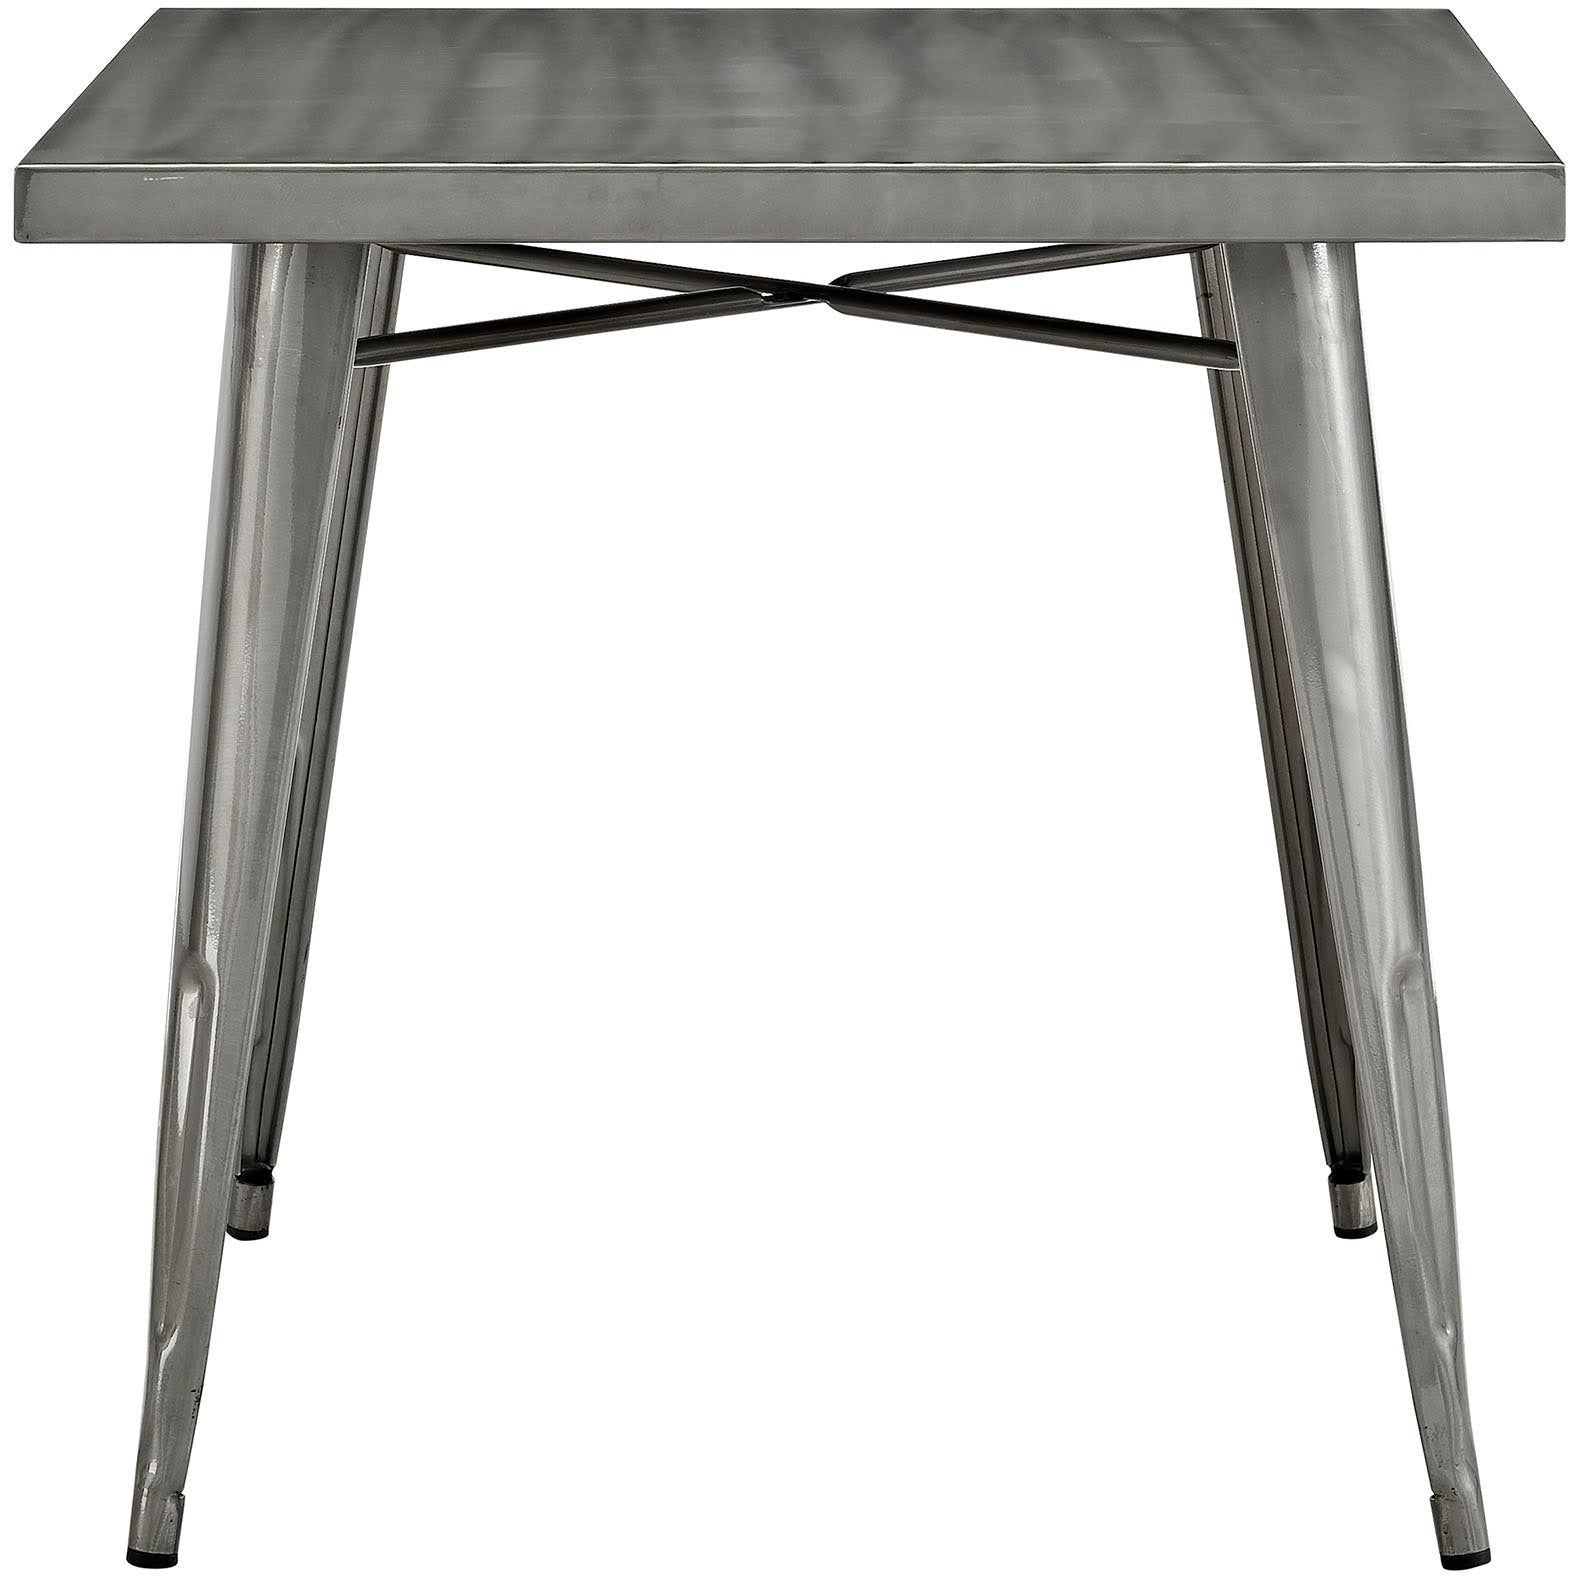 Alacrity Square Metal Dining Table - Gunmetal